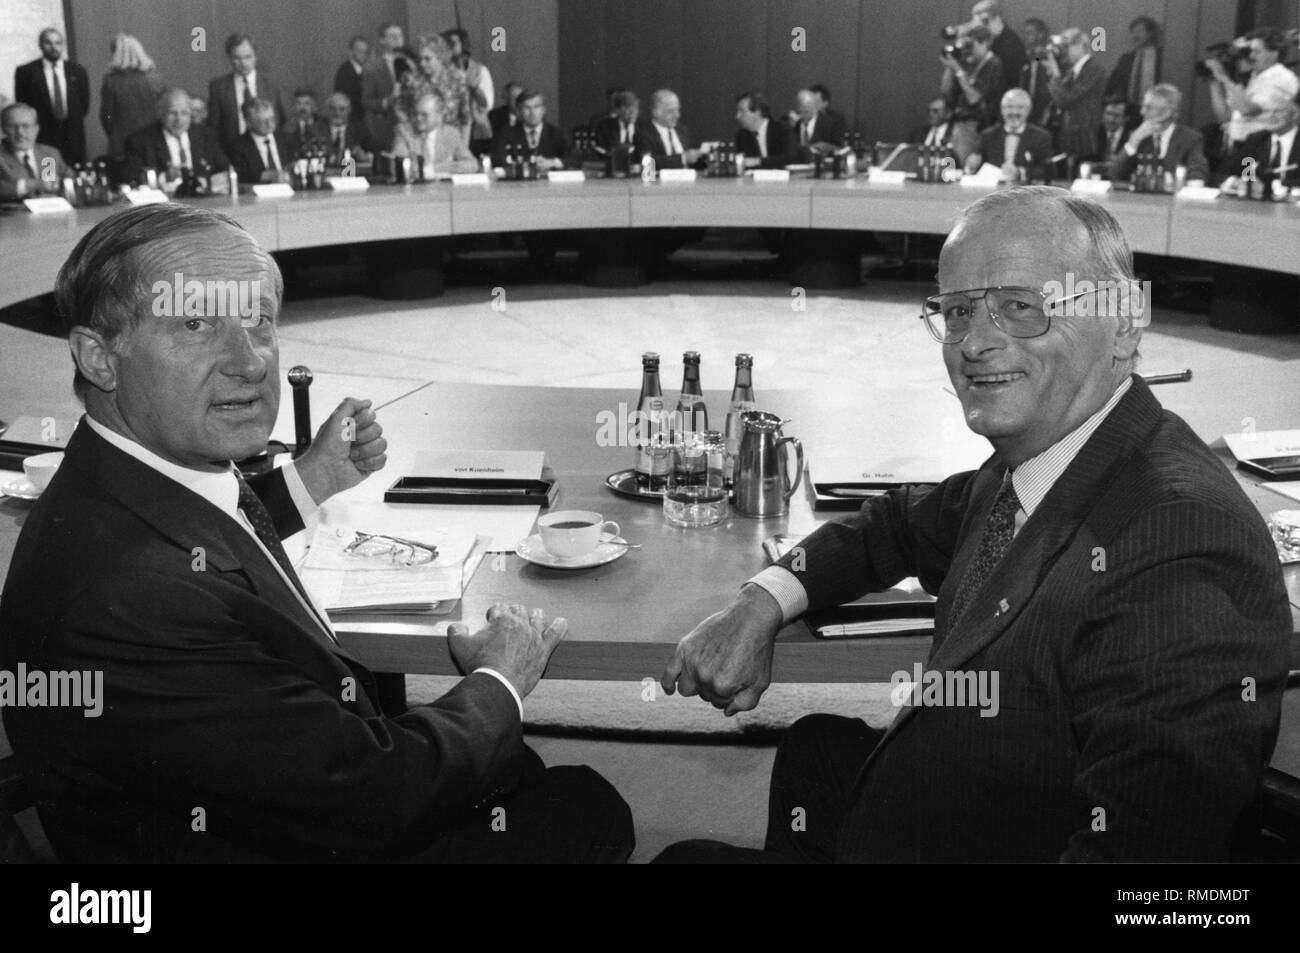 BMW CEO Eberhard von Kuenheim (left) and dr. Carl H. Hahn, CEO of VW in the NATO conference room of the Federal Chancellery. - Stock Image